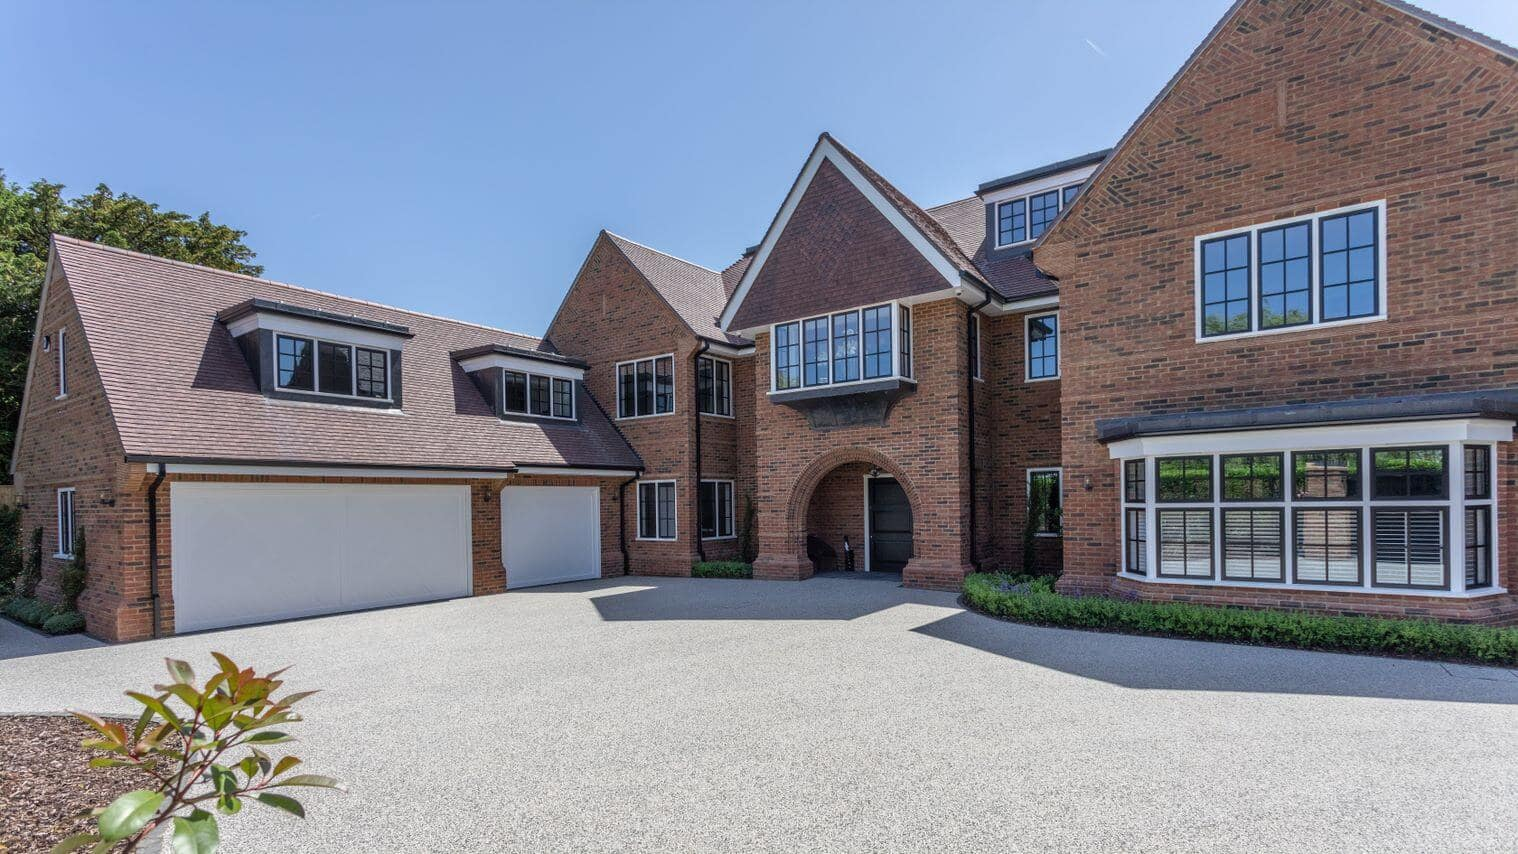 High-quality residential property in Beaconsfield showing Marley's Acme Double Camber